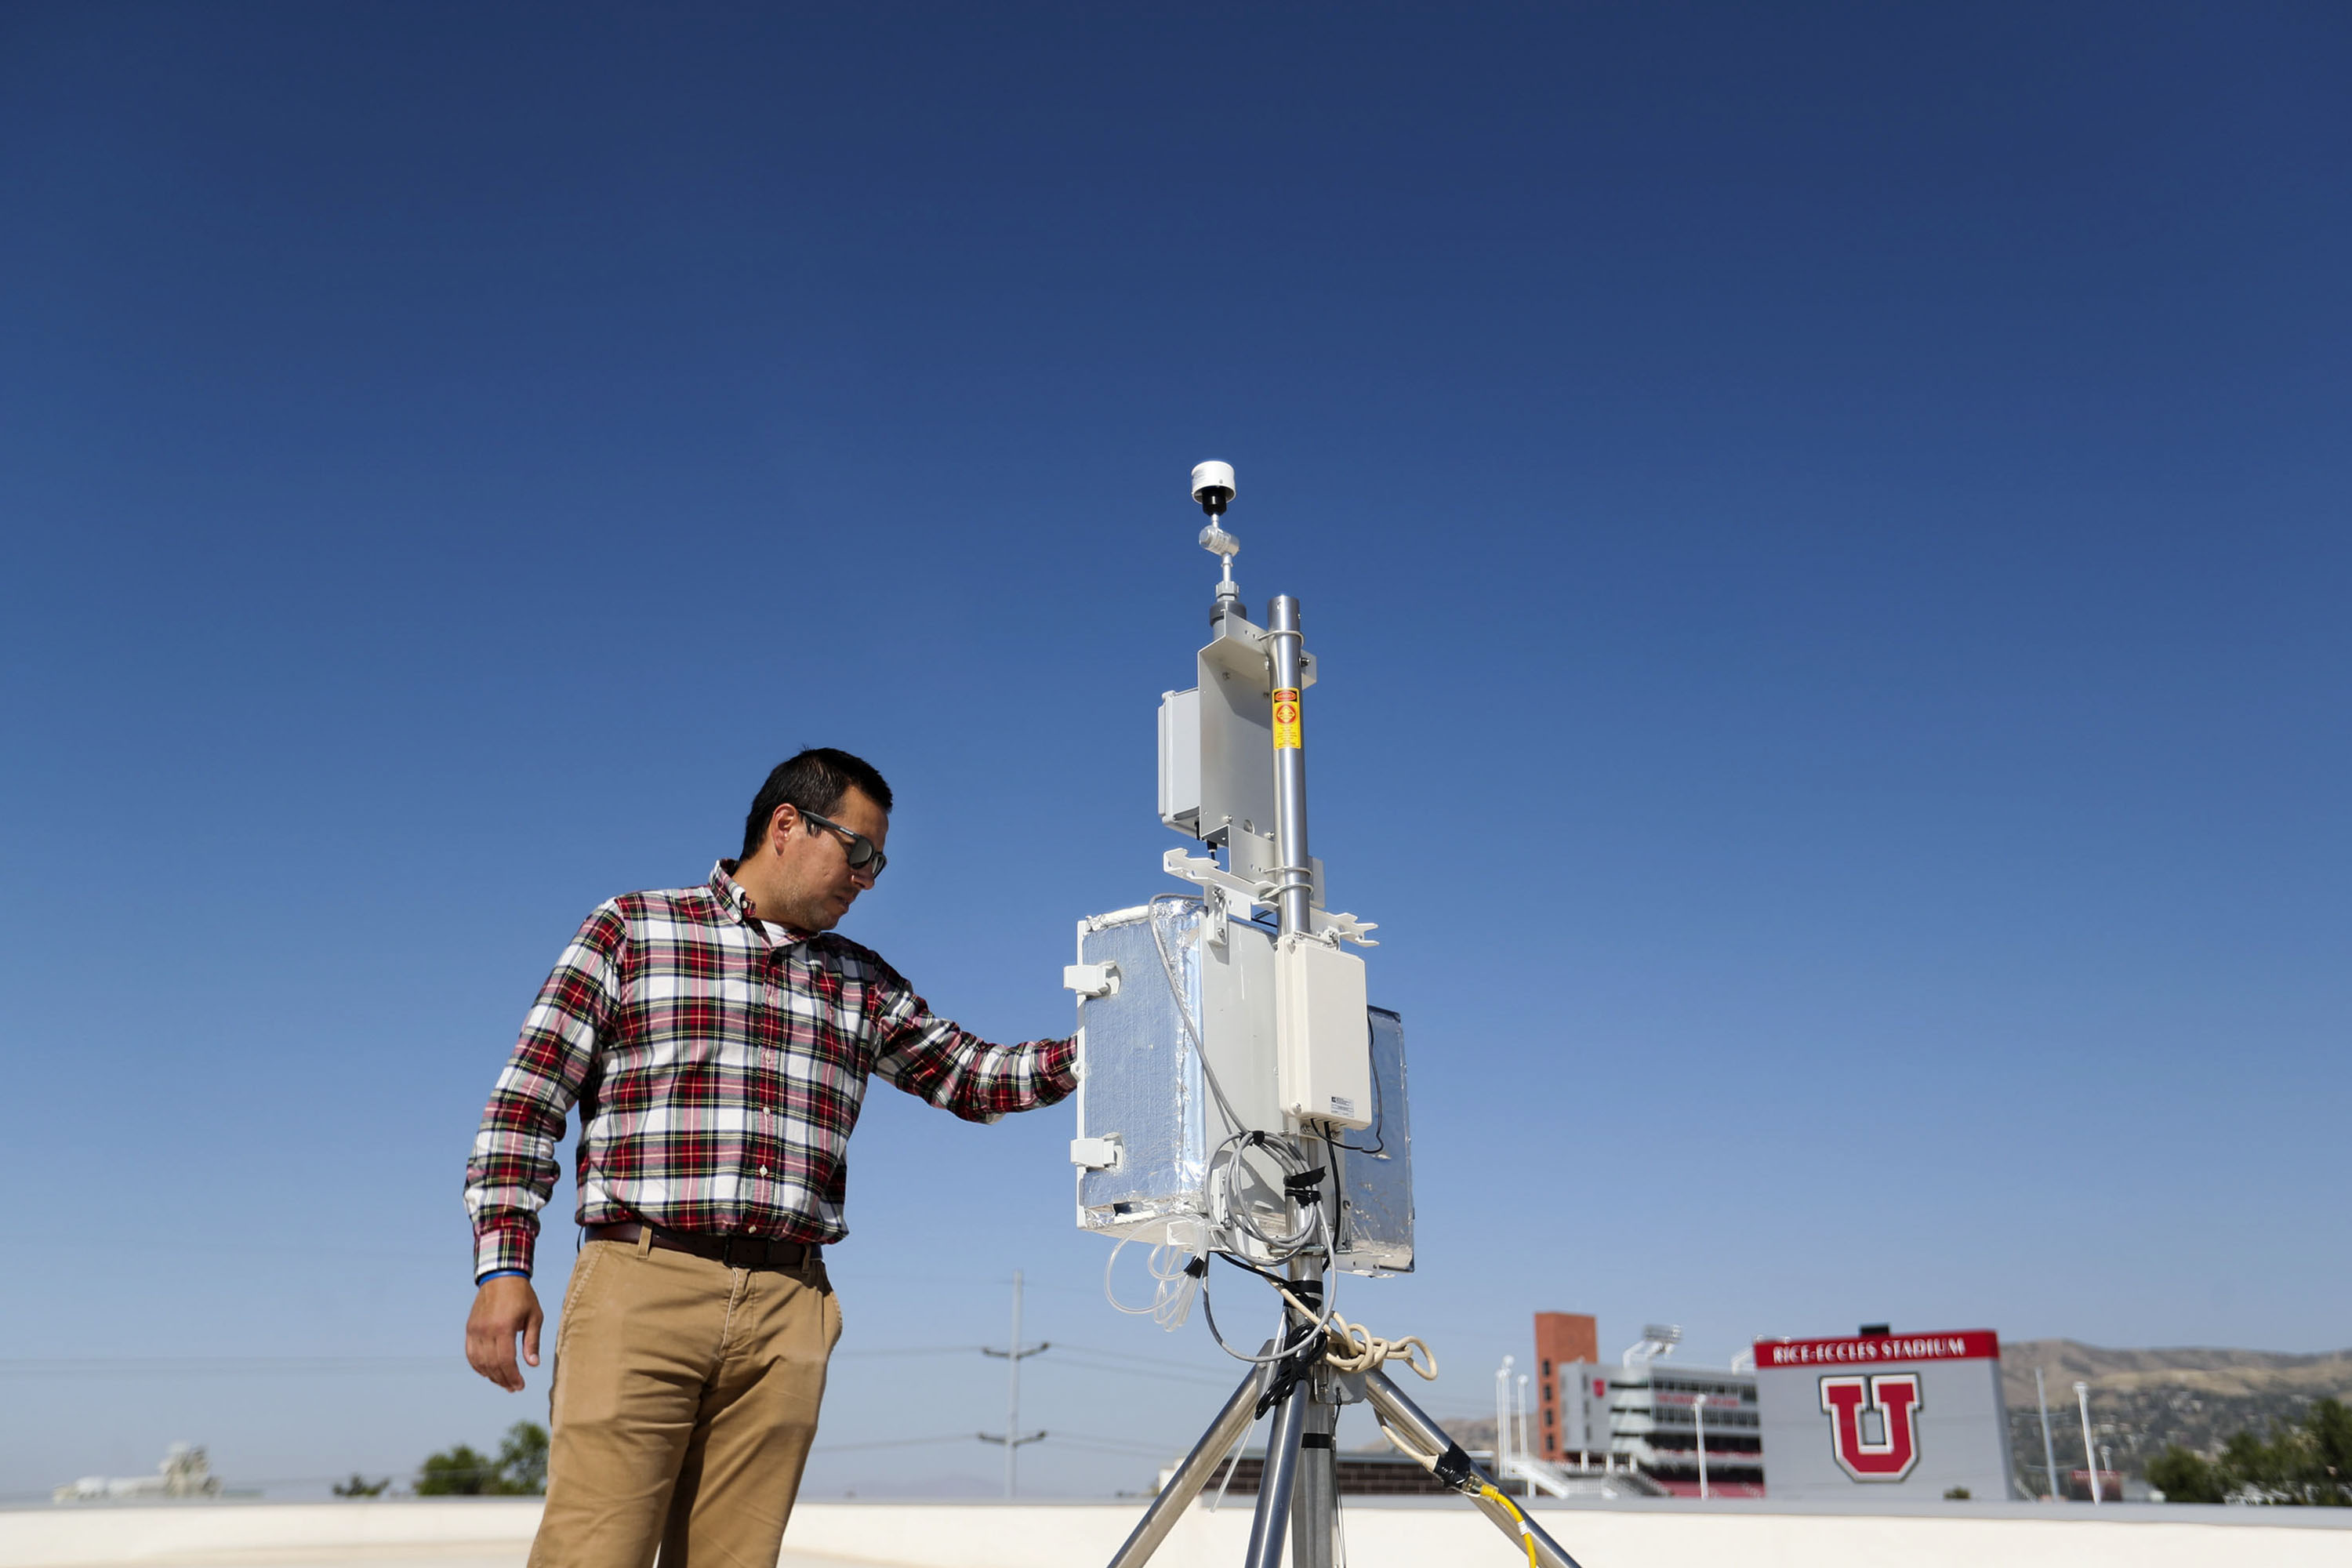 Daniel Mendoza, a professor in atmospheric science, pulmonary medicine and metropolitan planning,checks an air quality monitoring station on the roof of the Spence and Cleone Eccles Football Center at the University of Utah in Salt Lake City on Friday, Sept. 23, 2021.